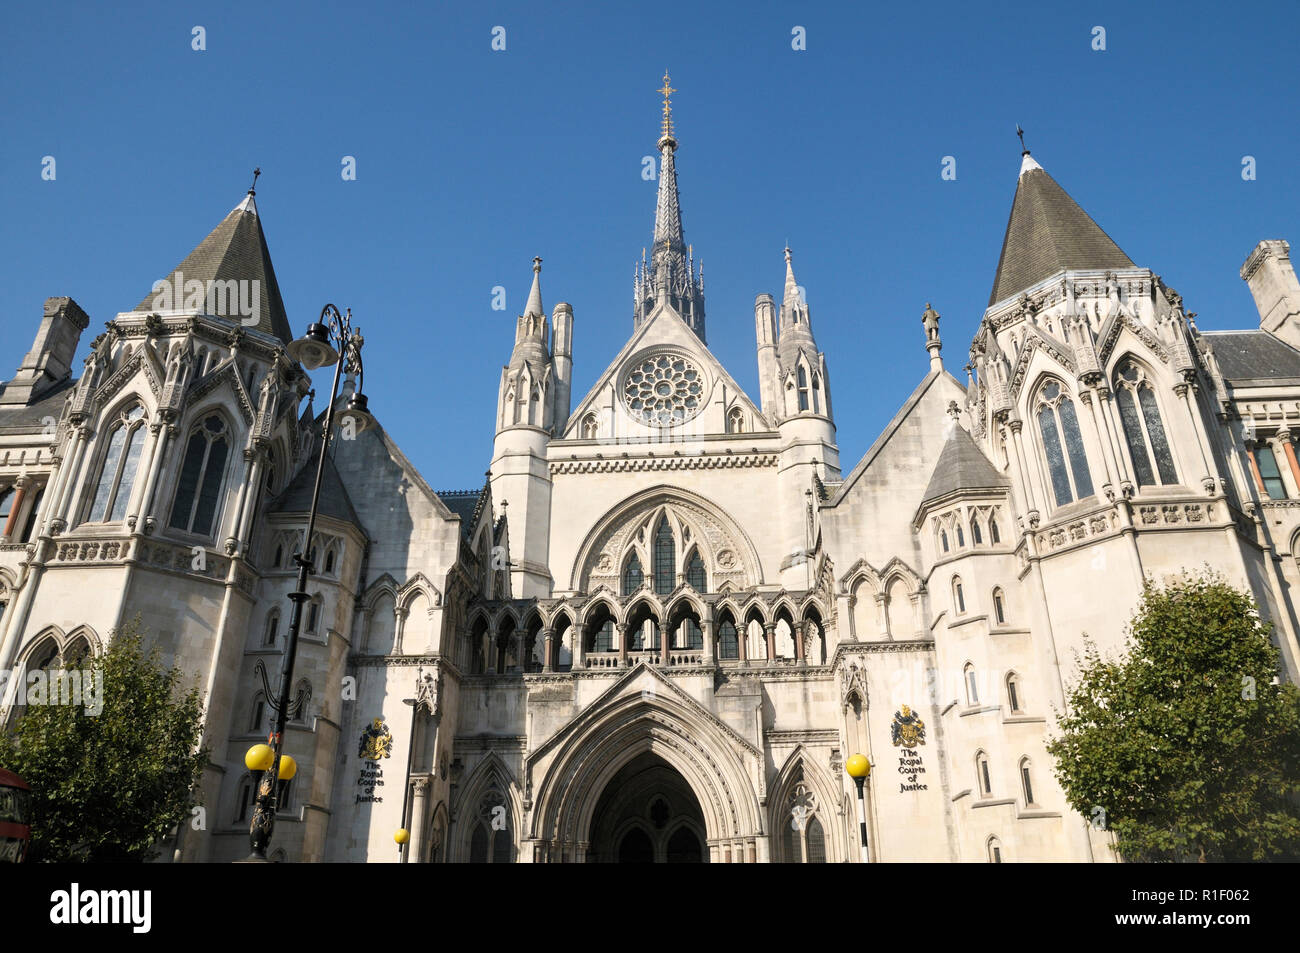 The Royal Courts of Justice, High Court, London, England, UK Stock Photo